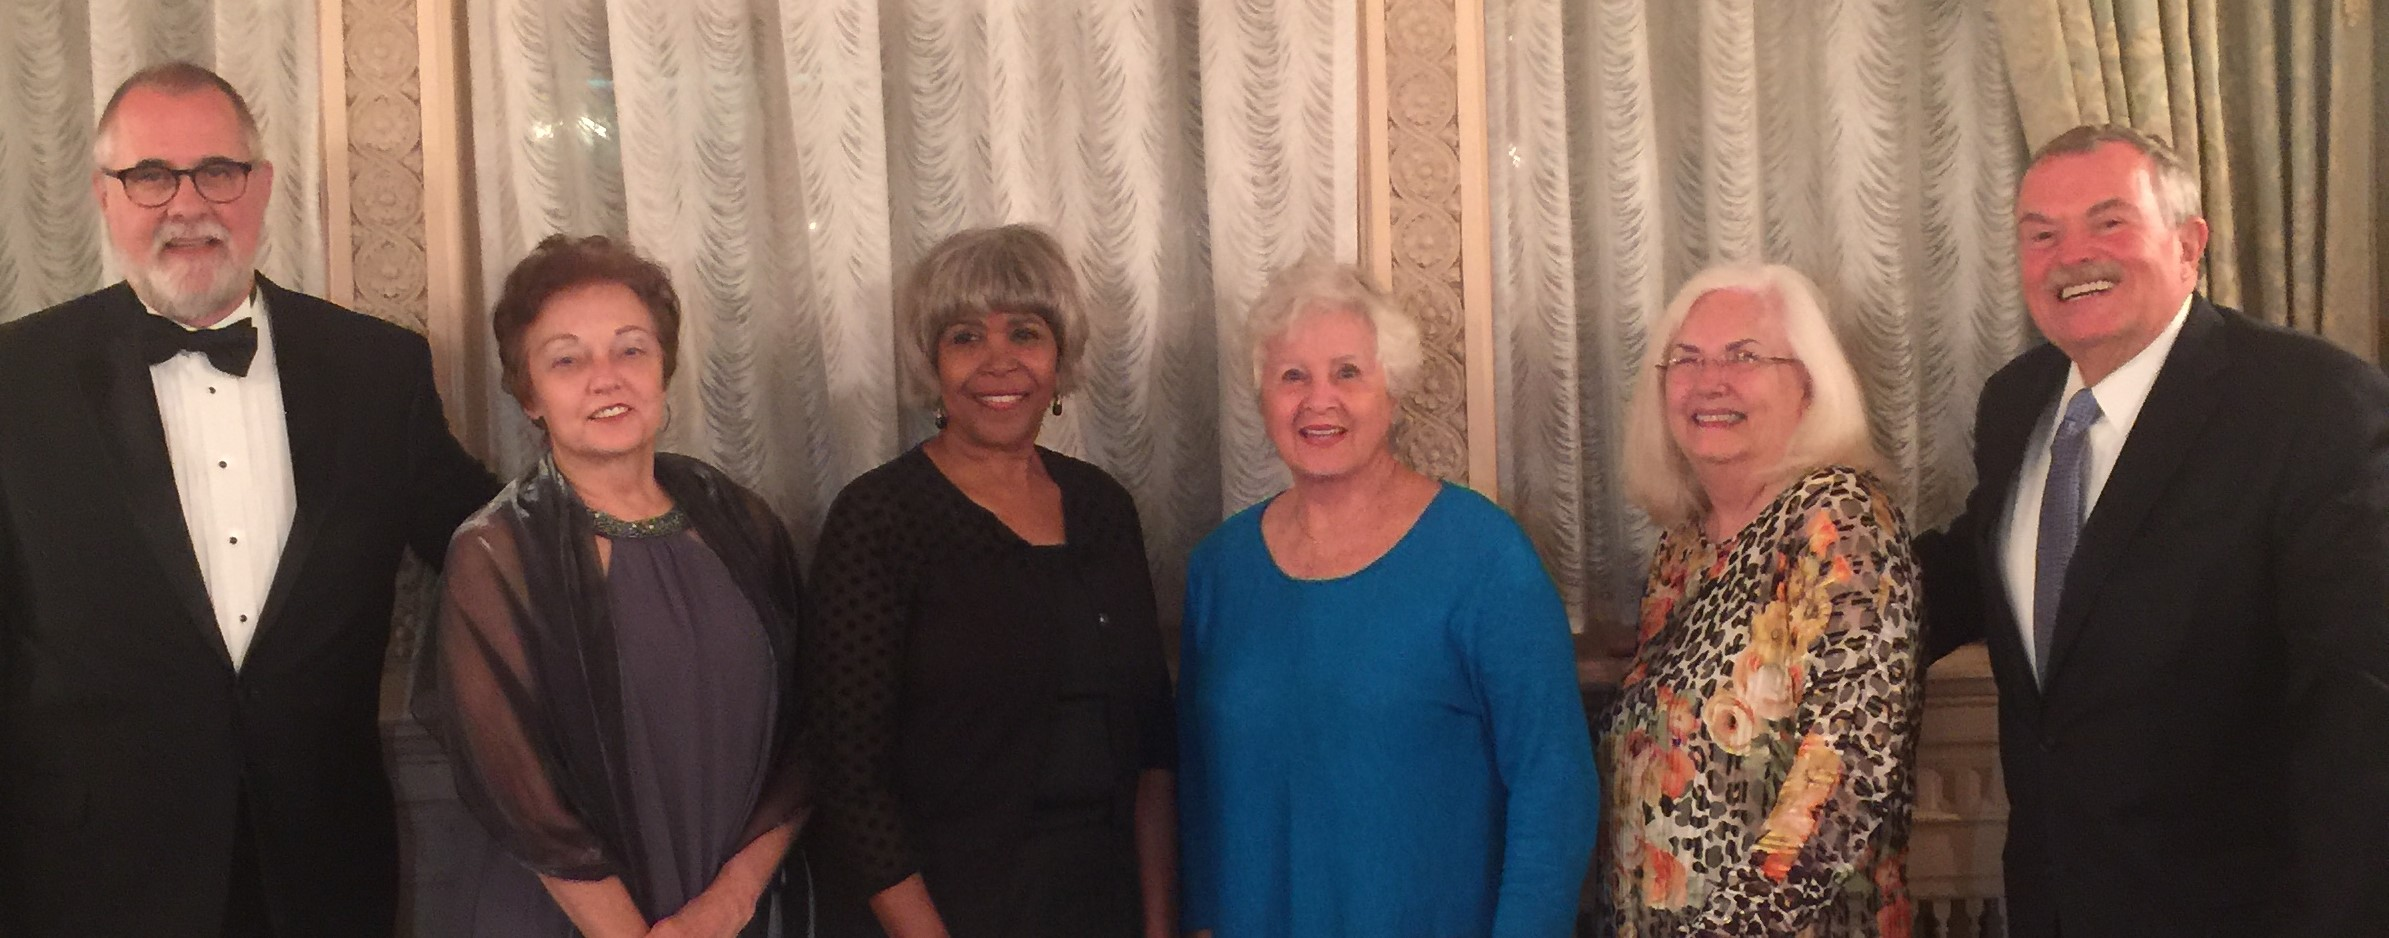 Vergers     from the Atlanta pause during the Annual Banquet for a photo.      Phillip Knight, Martha-Sue Blythe, Yolande Collins, Cheryl Josephson, Ruth Anne Tatum and Chuck Dale      Not Shown: David Neville